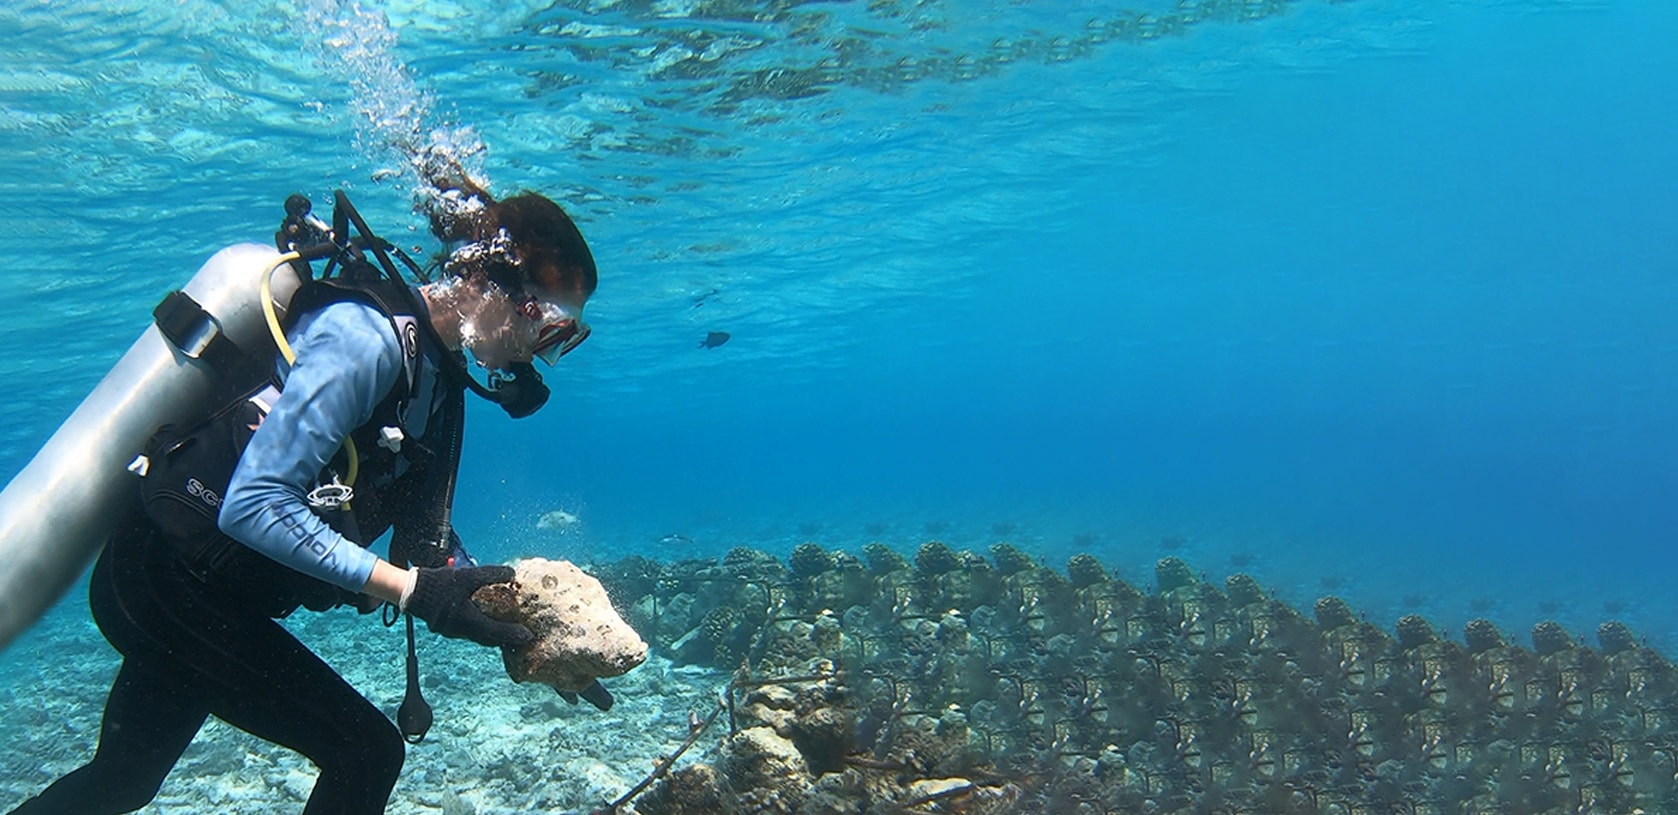 Diver planting coral fragments in frame